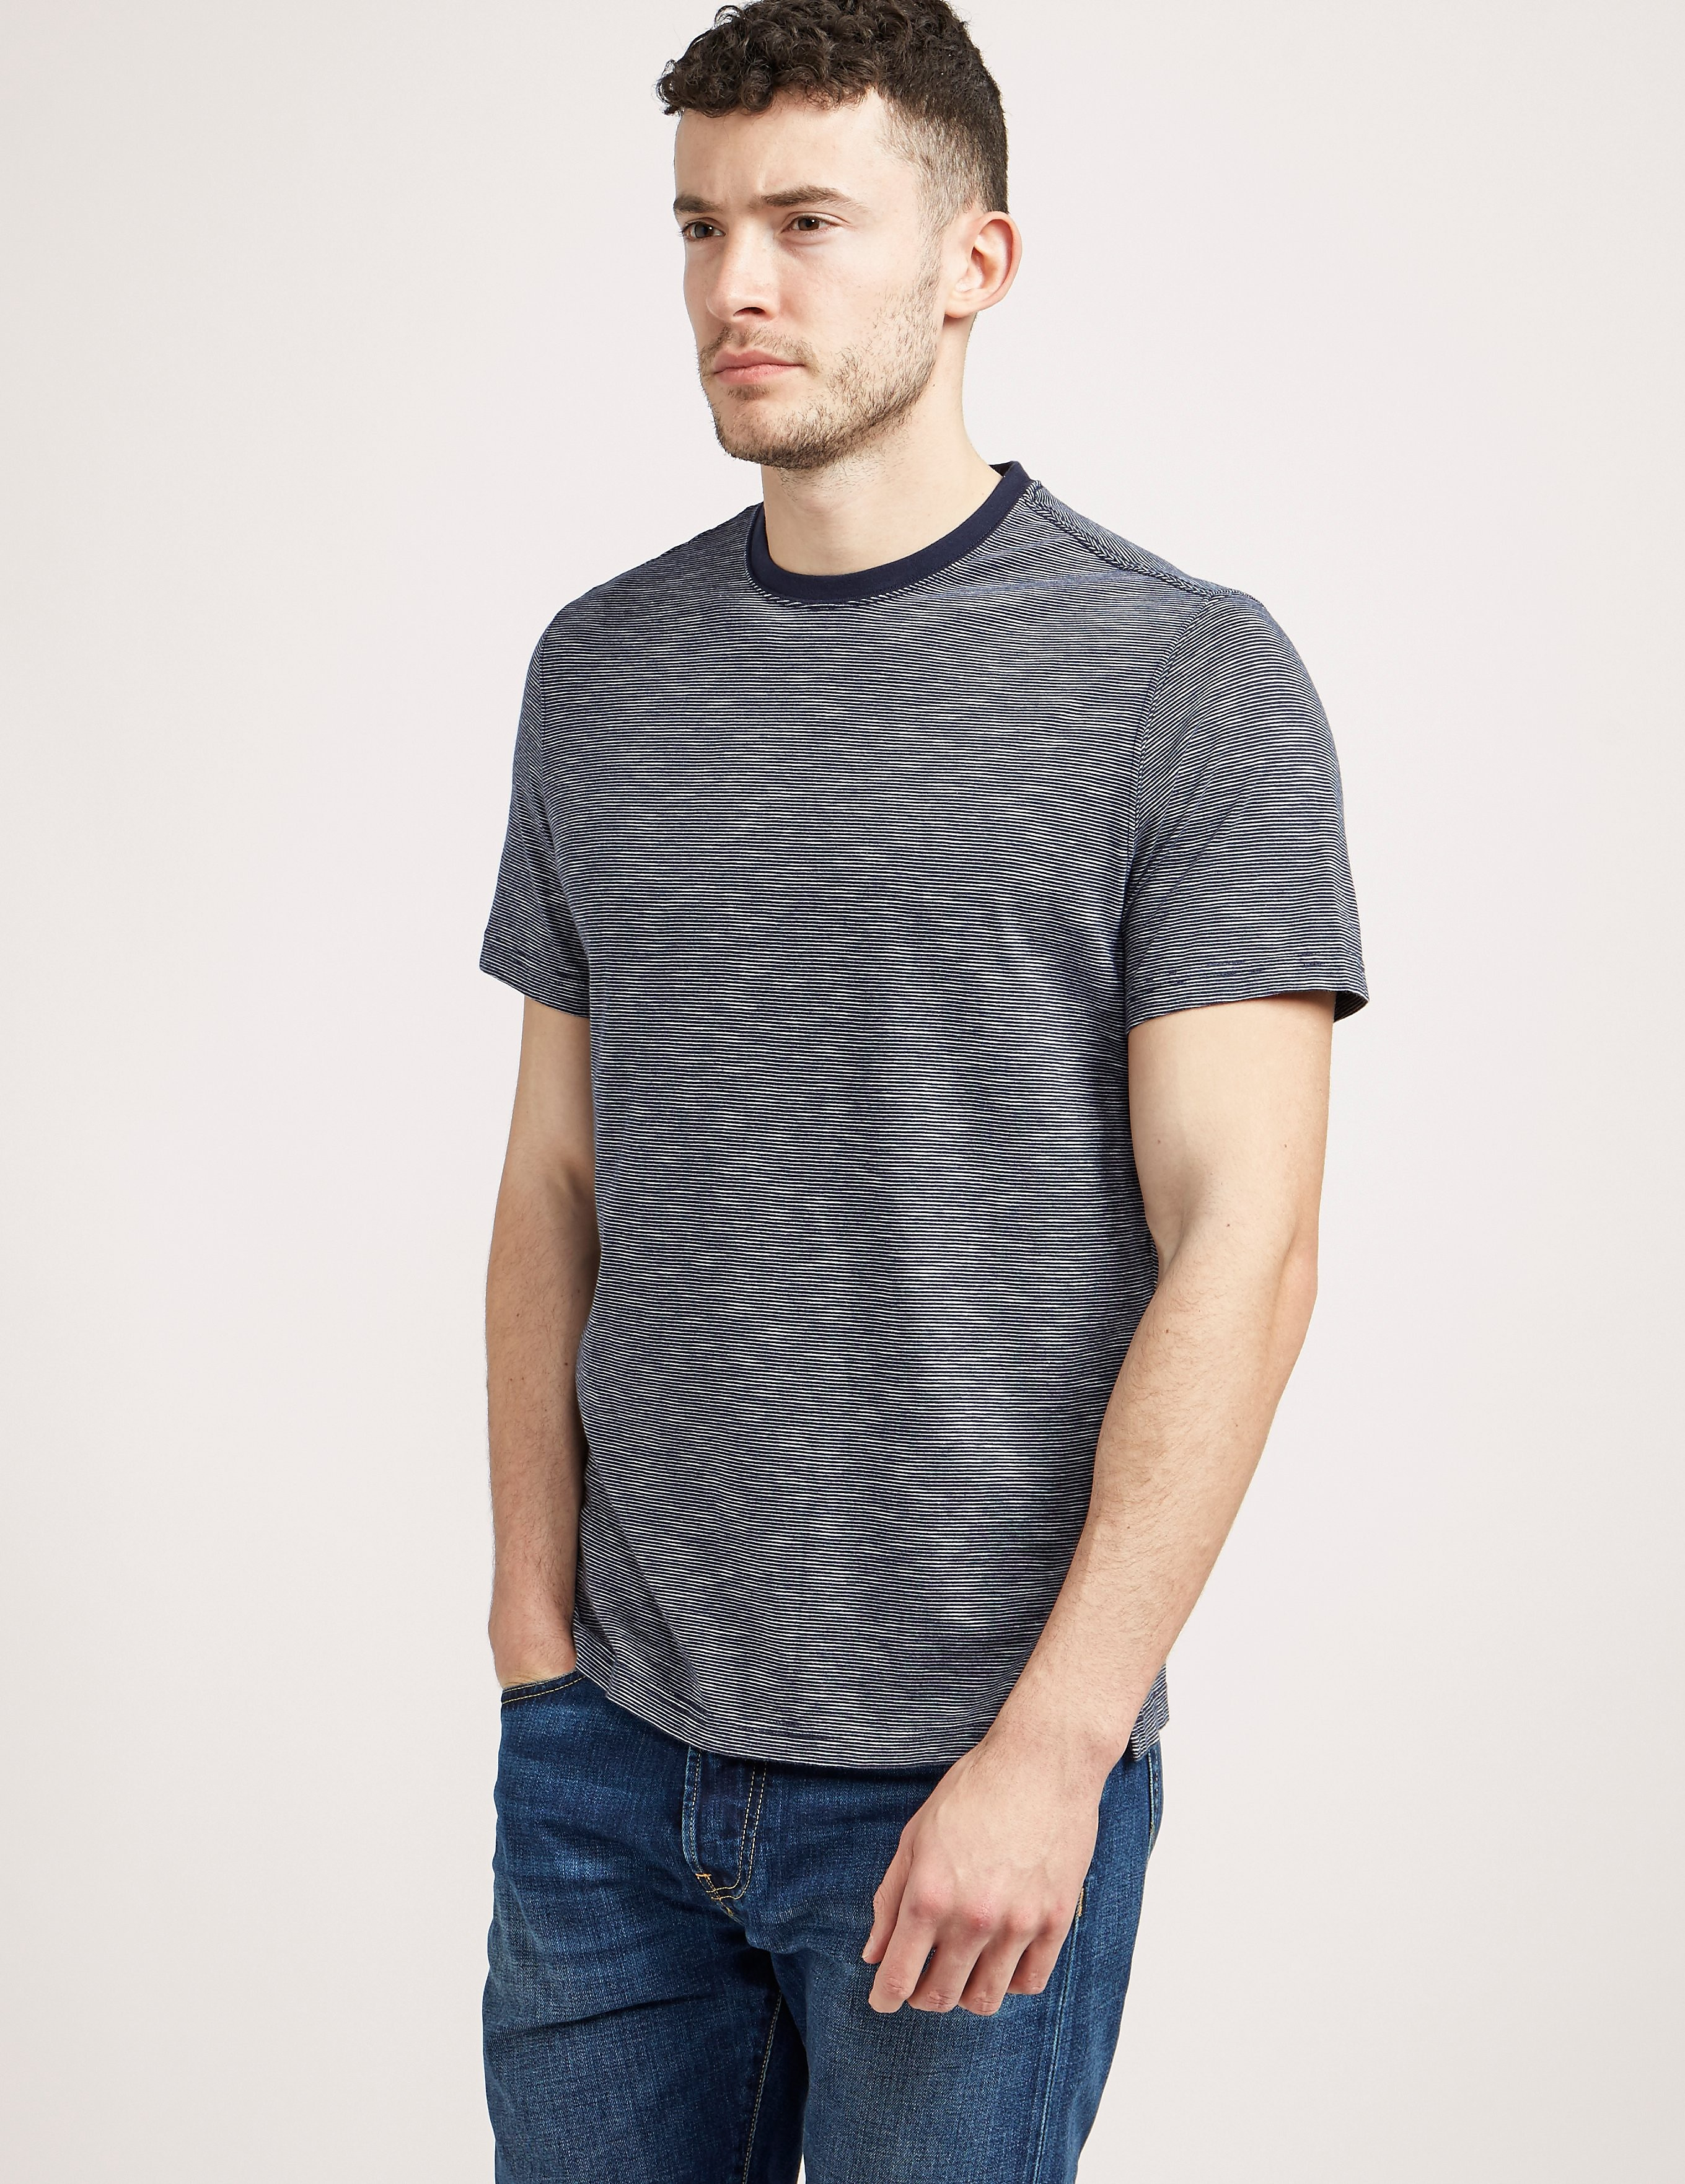 Barbour Marsh Short Sleeve T-Shirt